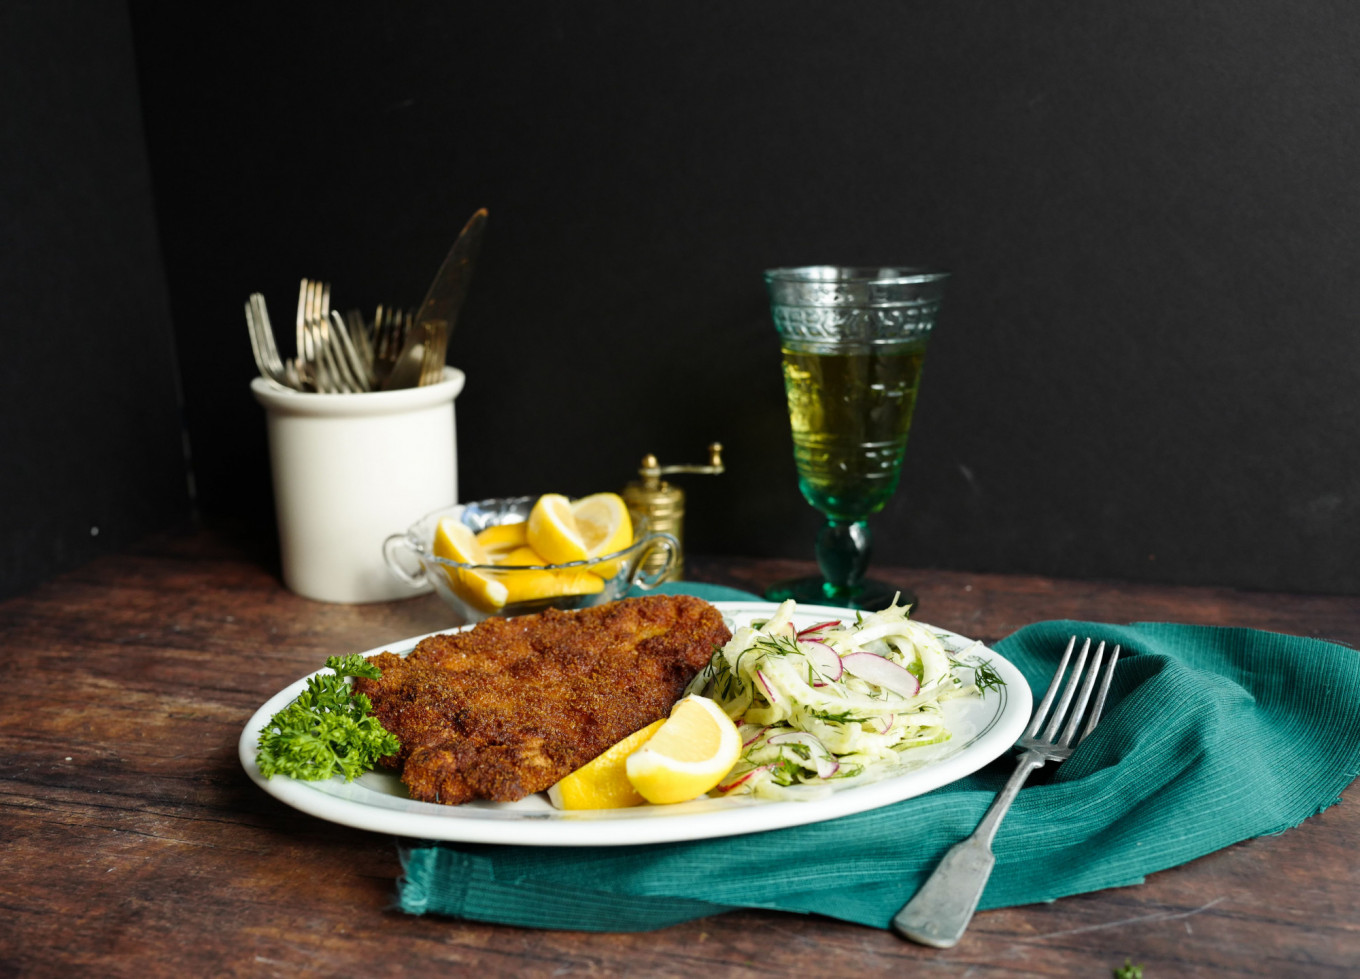 My Favorite Things: Chicken Schnitzel and Slaw - The Moscow Times